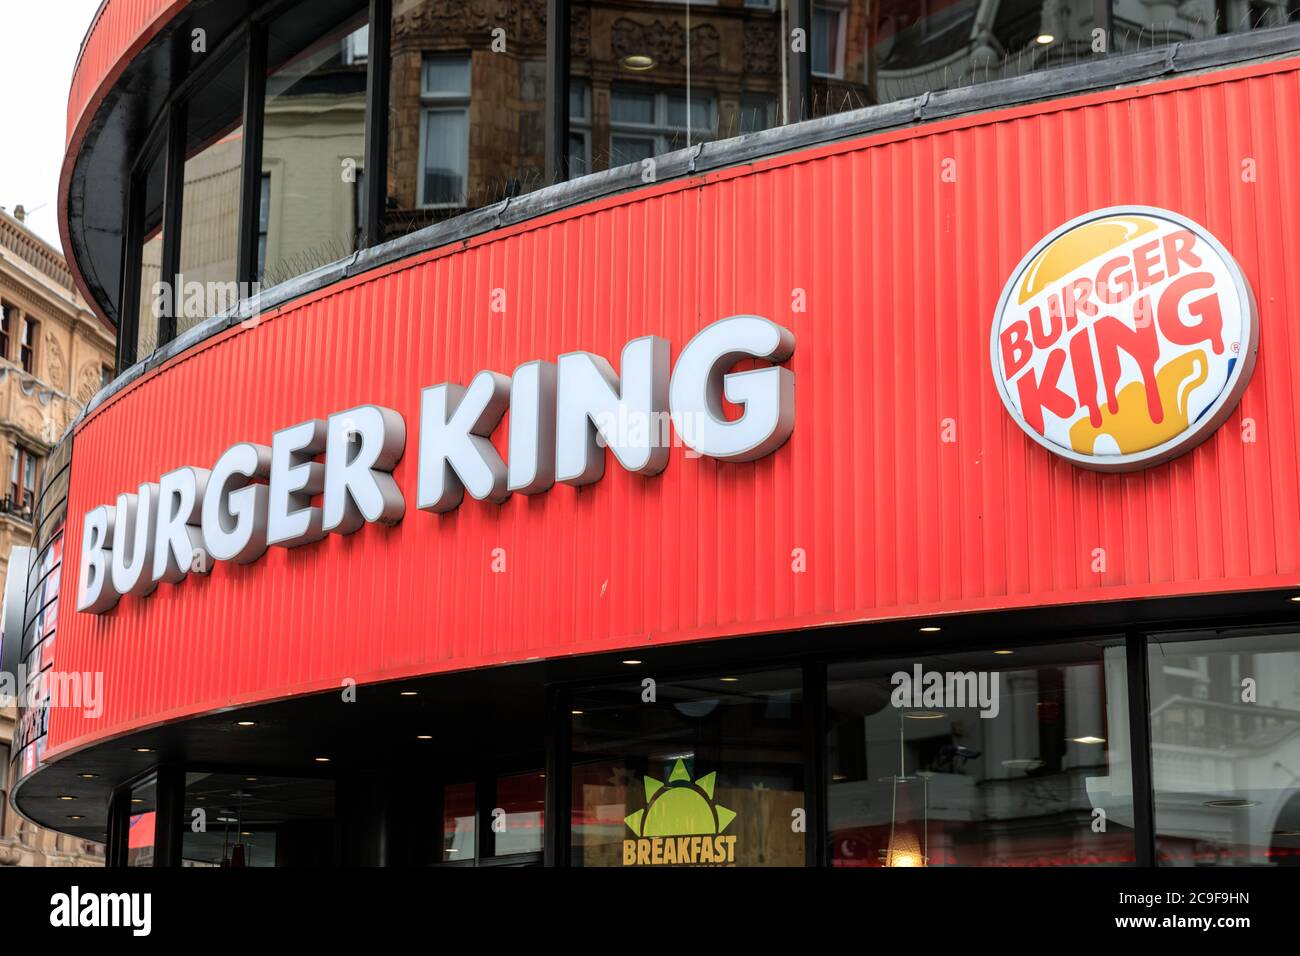 Burger King Fast Food Restaurant Exterior Leicester Square London England Uk Stock Photo Alamy